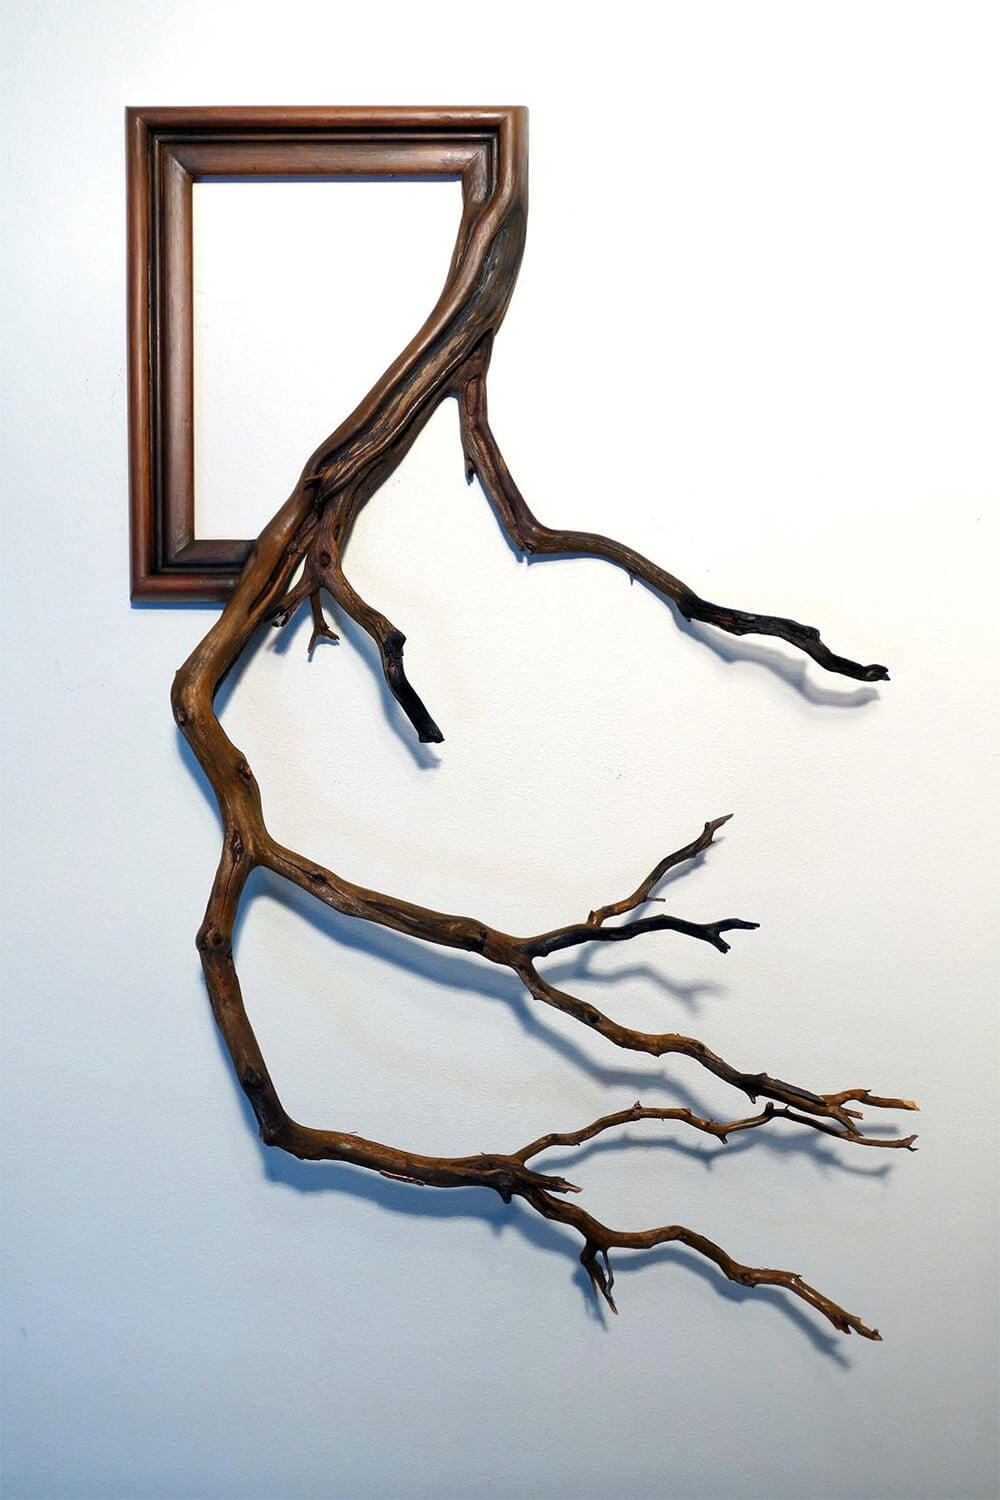 tree-branch-frames-darryl-cox-freeyork-5